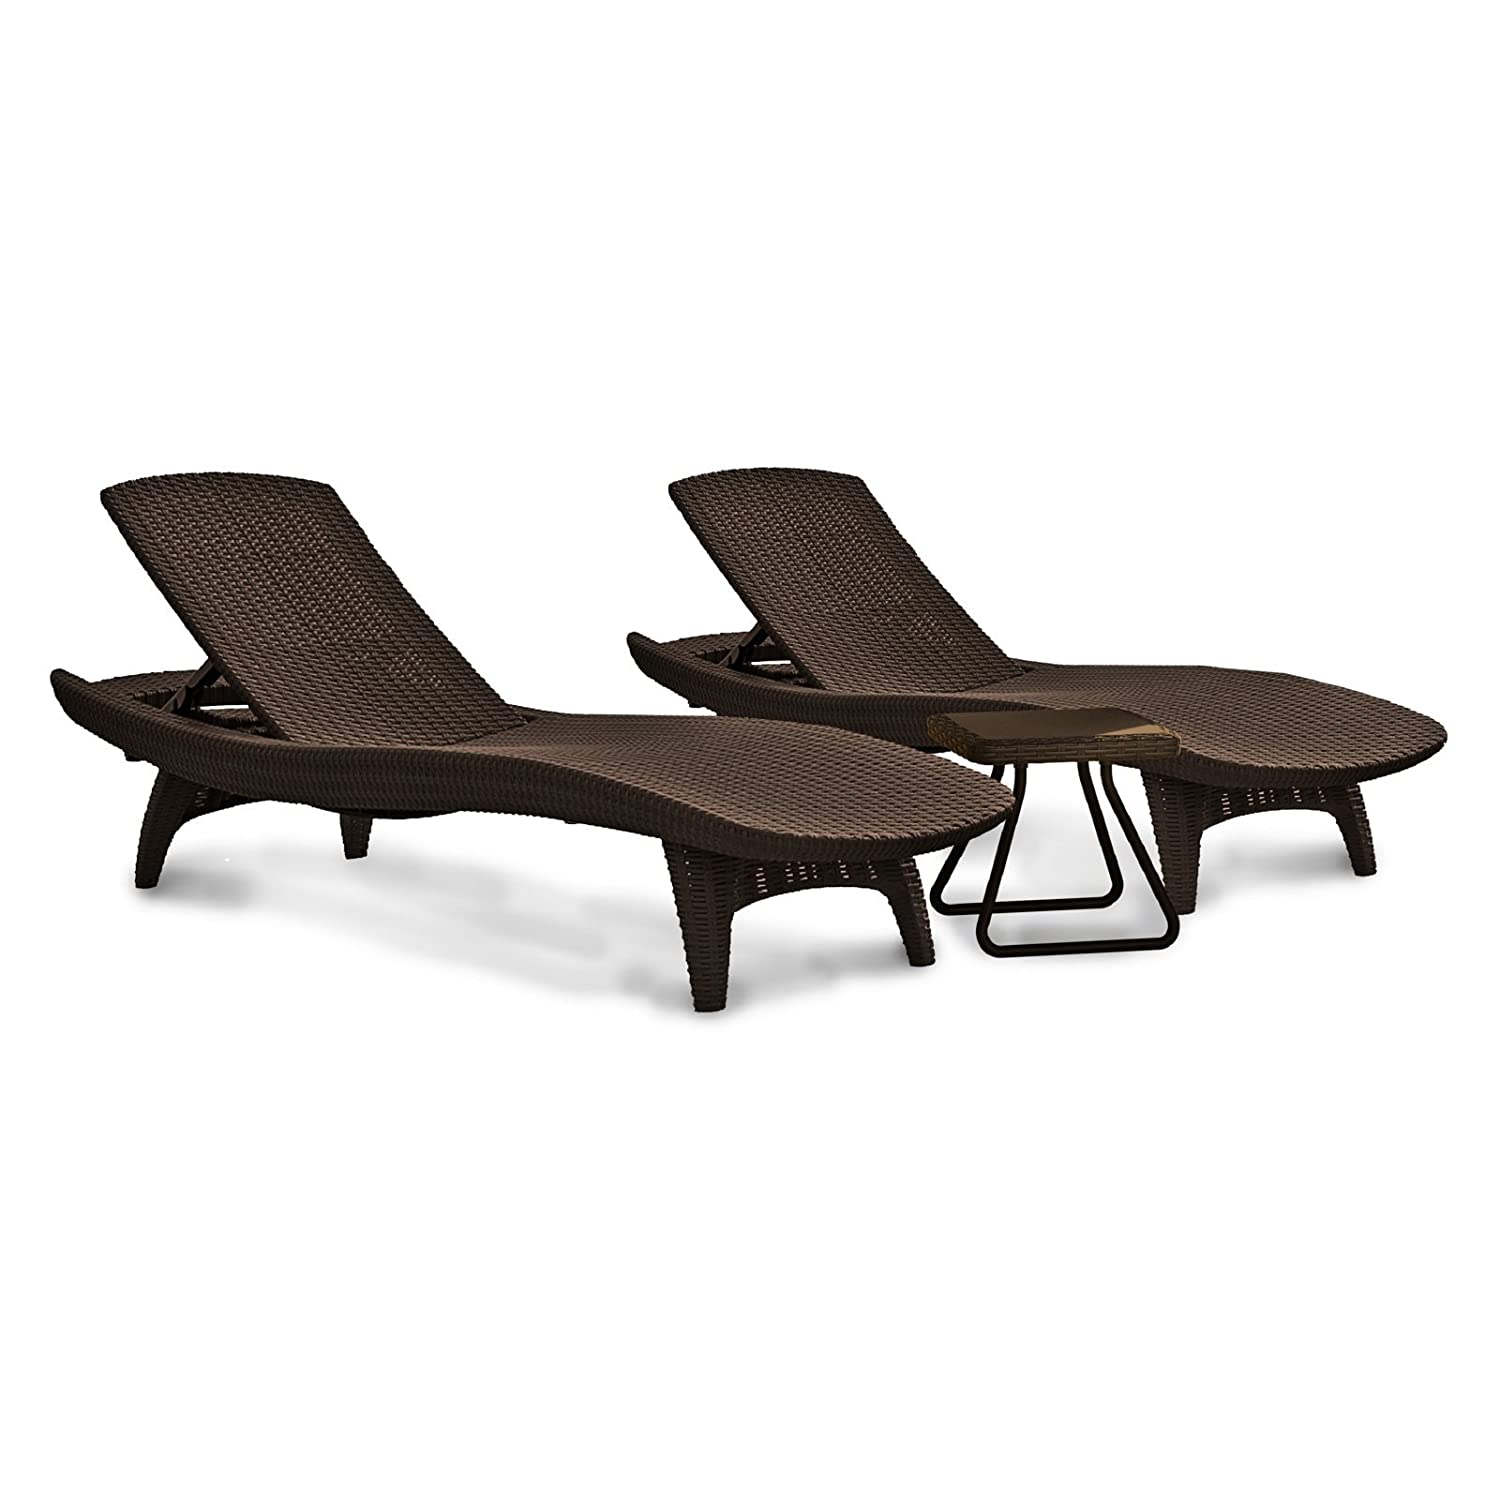 garden to bath loungers pool and brilliant patio chairs lounge have beyond bed amazing the ideas it awesome by chair with table double small del for convertible sets of chaise furniture rey